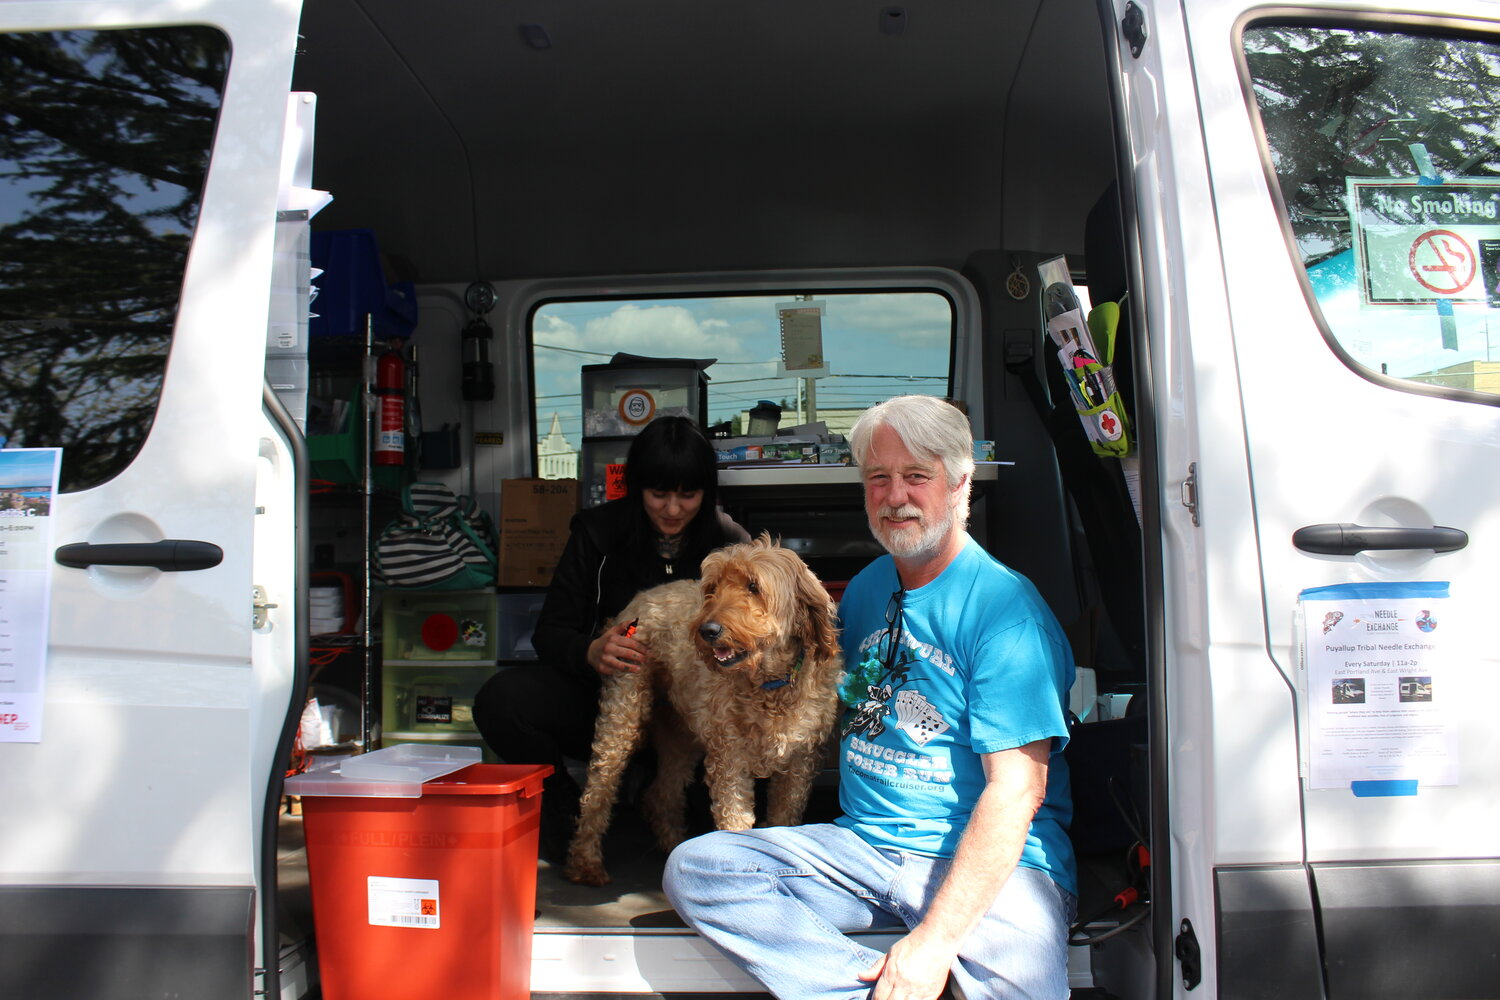 Caption: David Venes (right) poses at the Tacoma Needle Exchange van with his dog, Ethel, and outreach worker, Laura Reynolds., Credit: Amber Cortes